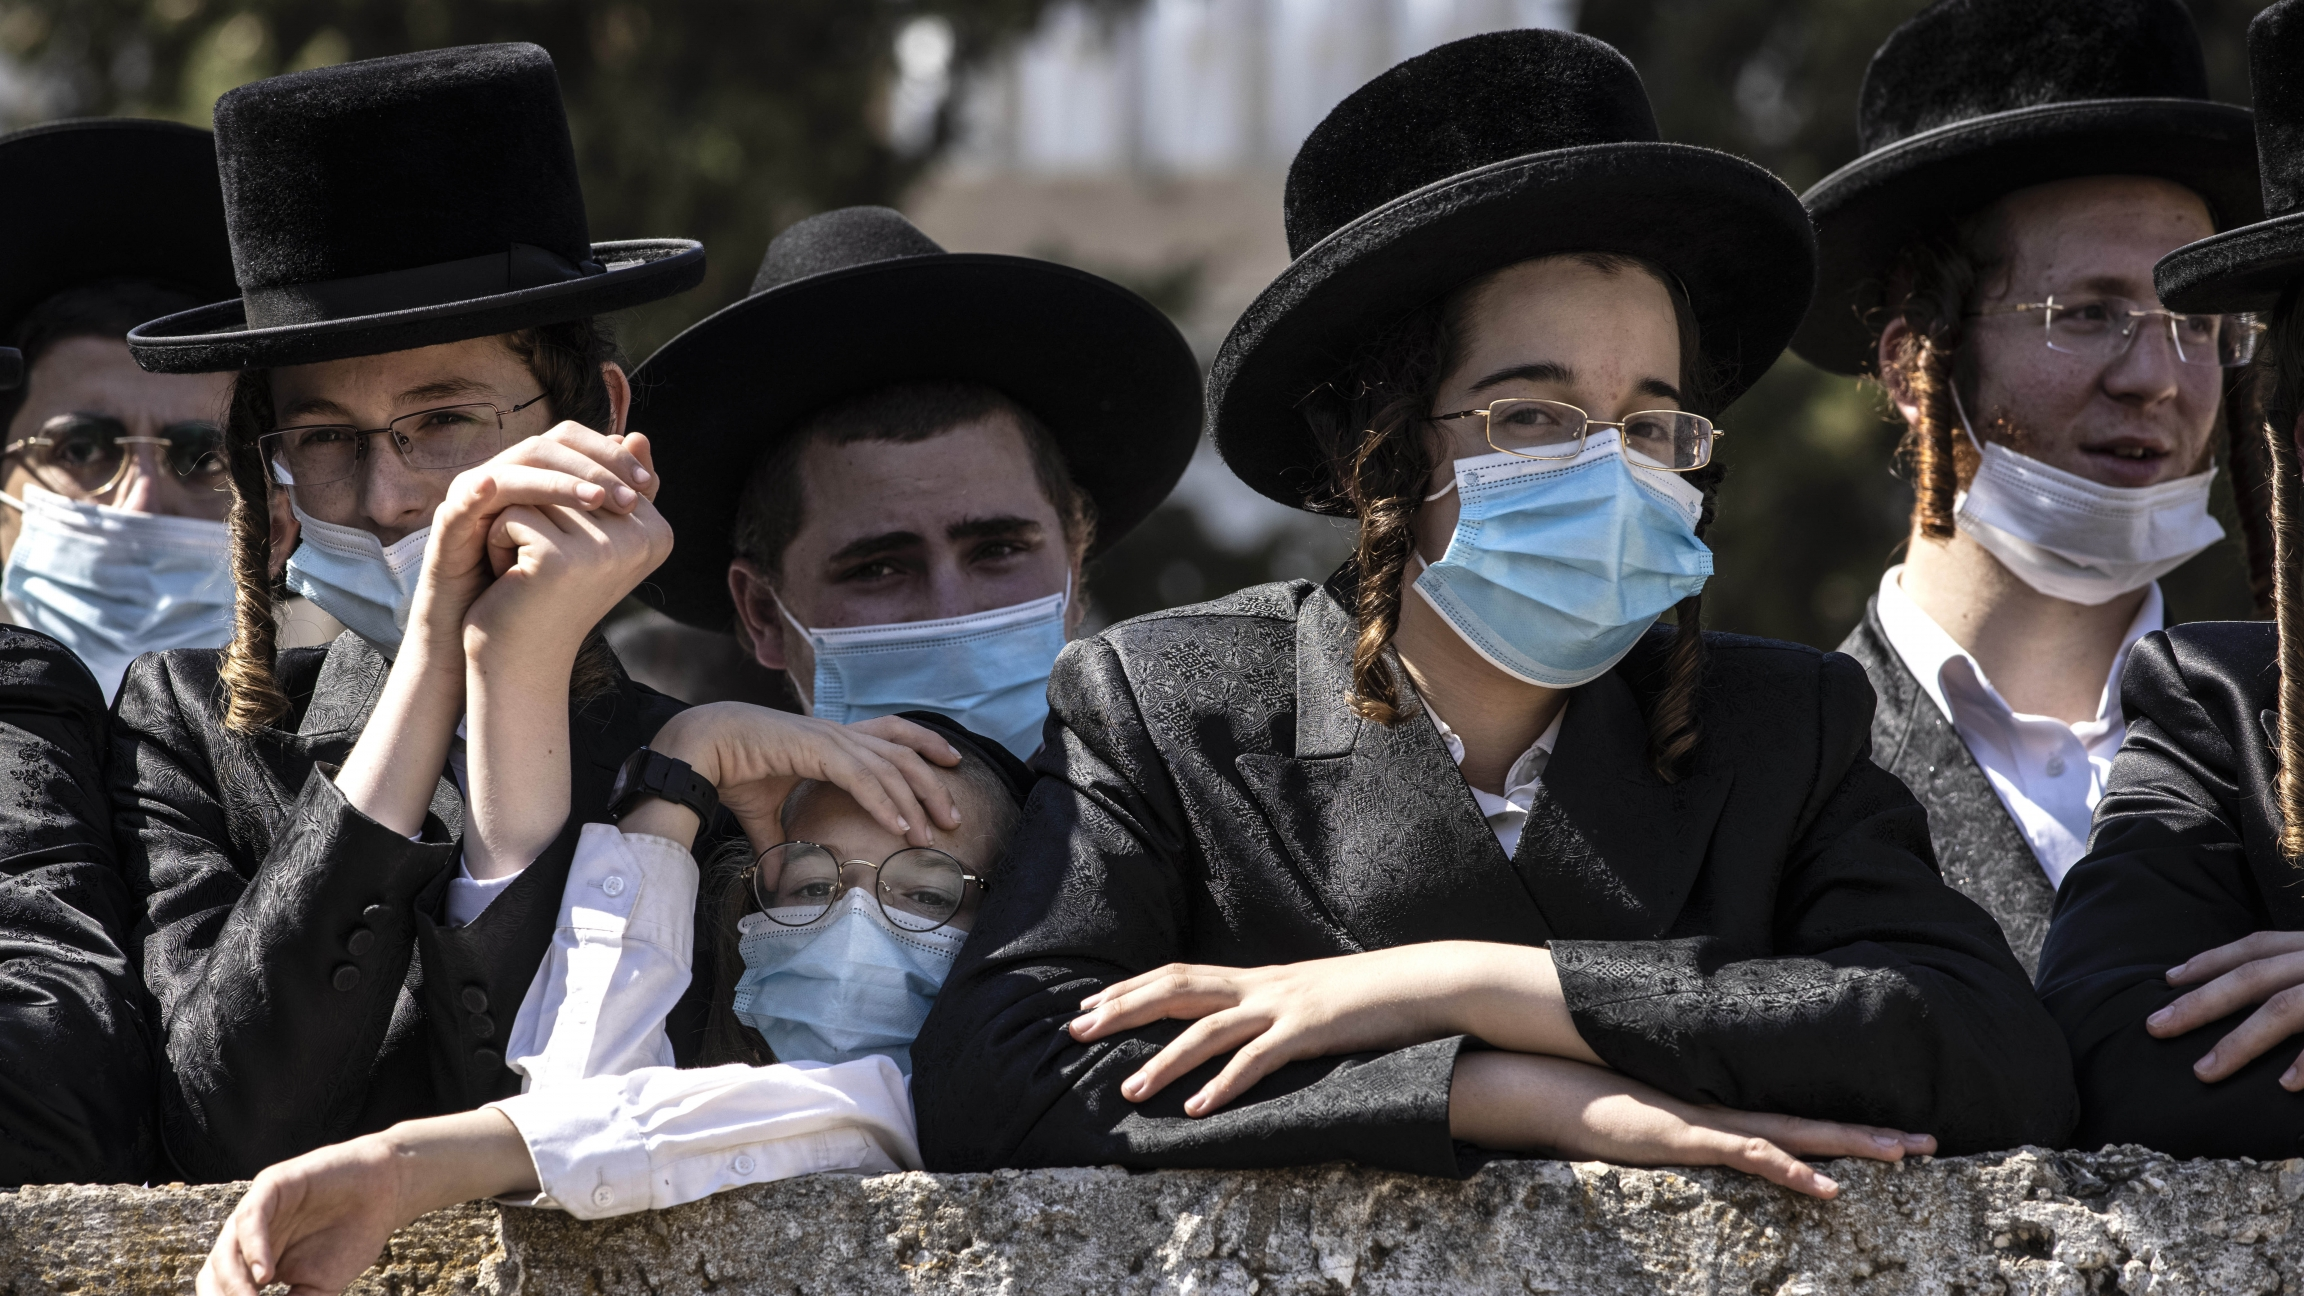 Ultra-Orthodox Jewish teens attend the funeral for Rabbi Mordechai Leifer in Ashdod, Israel, Oct. 5, 2020.